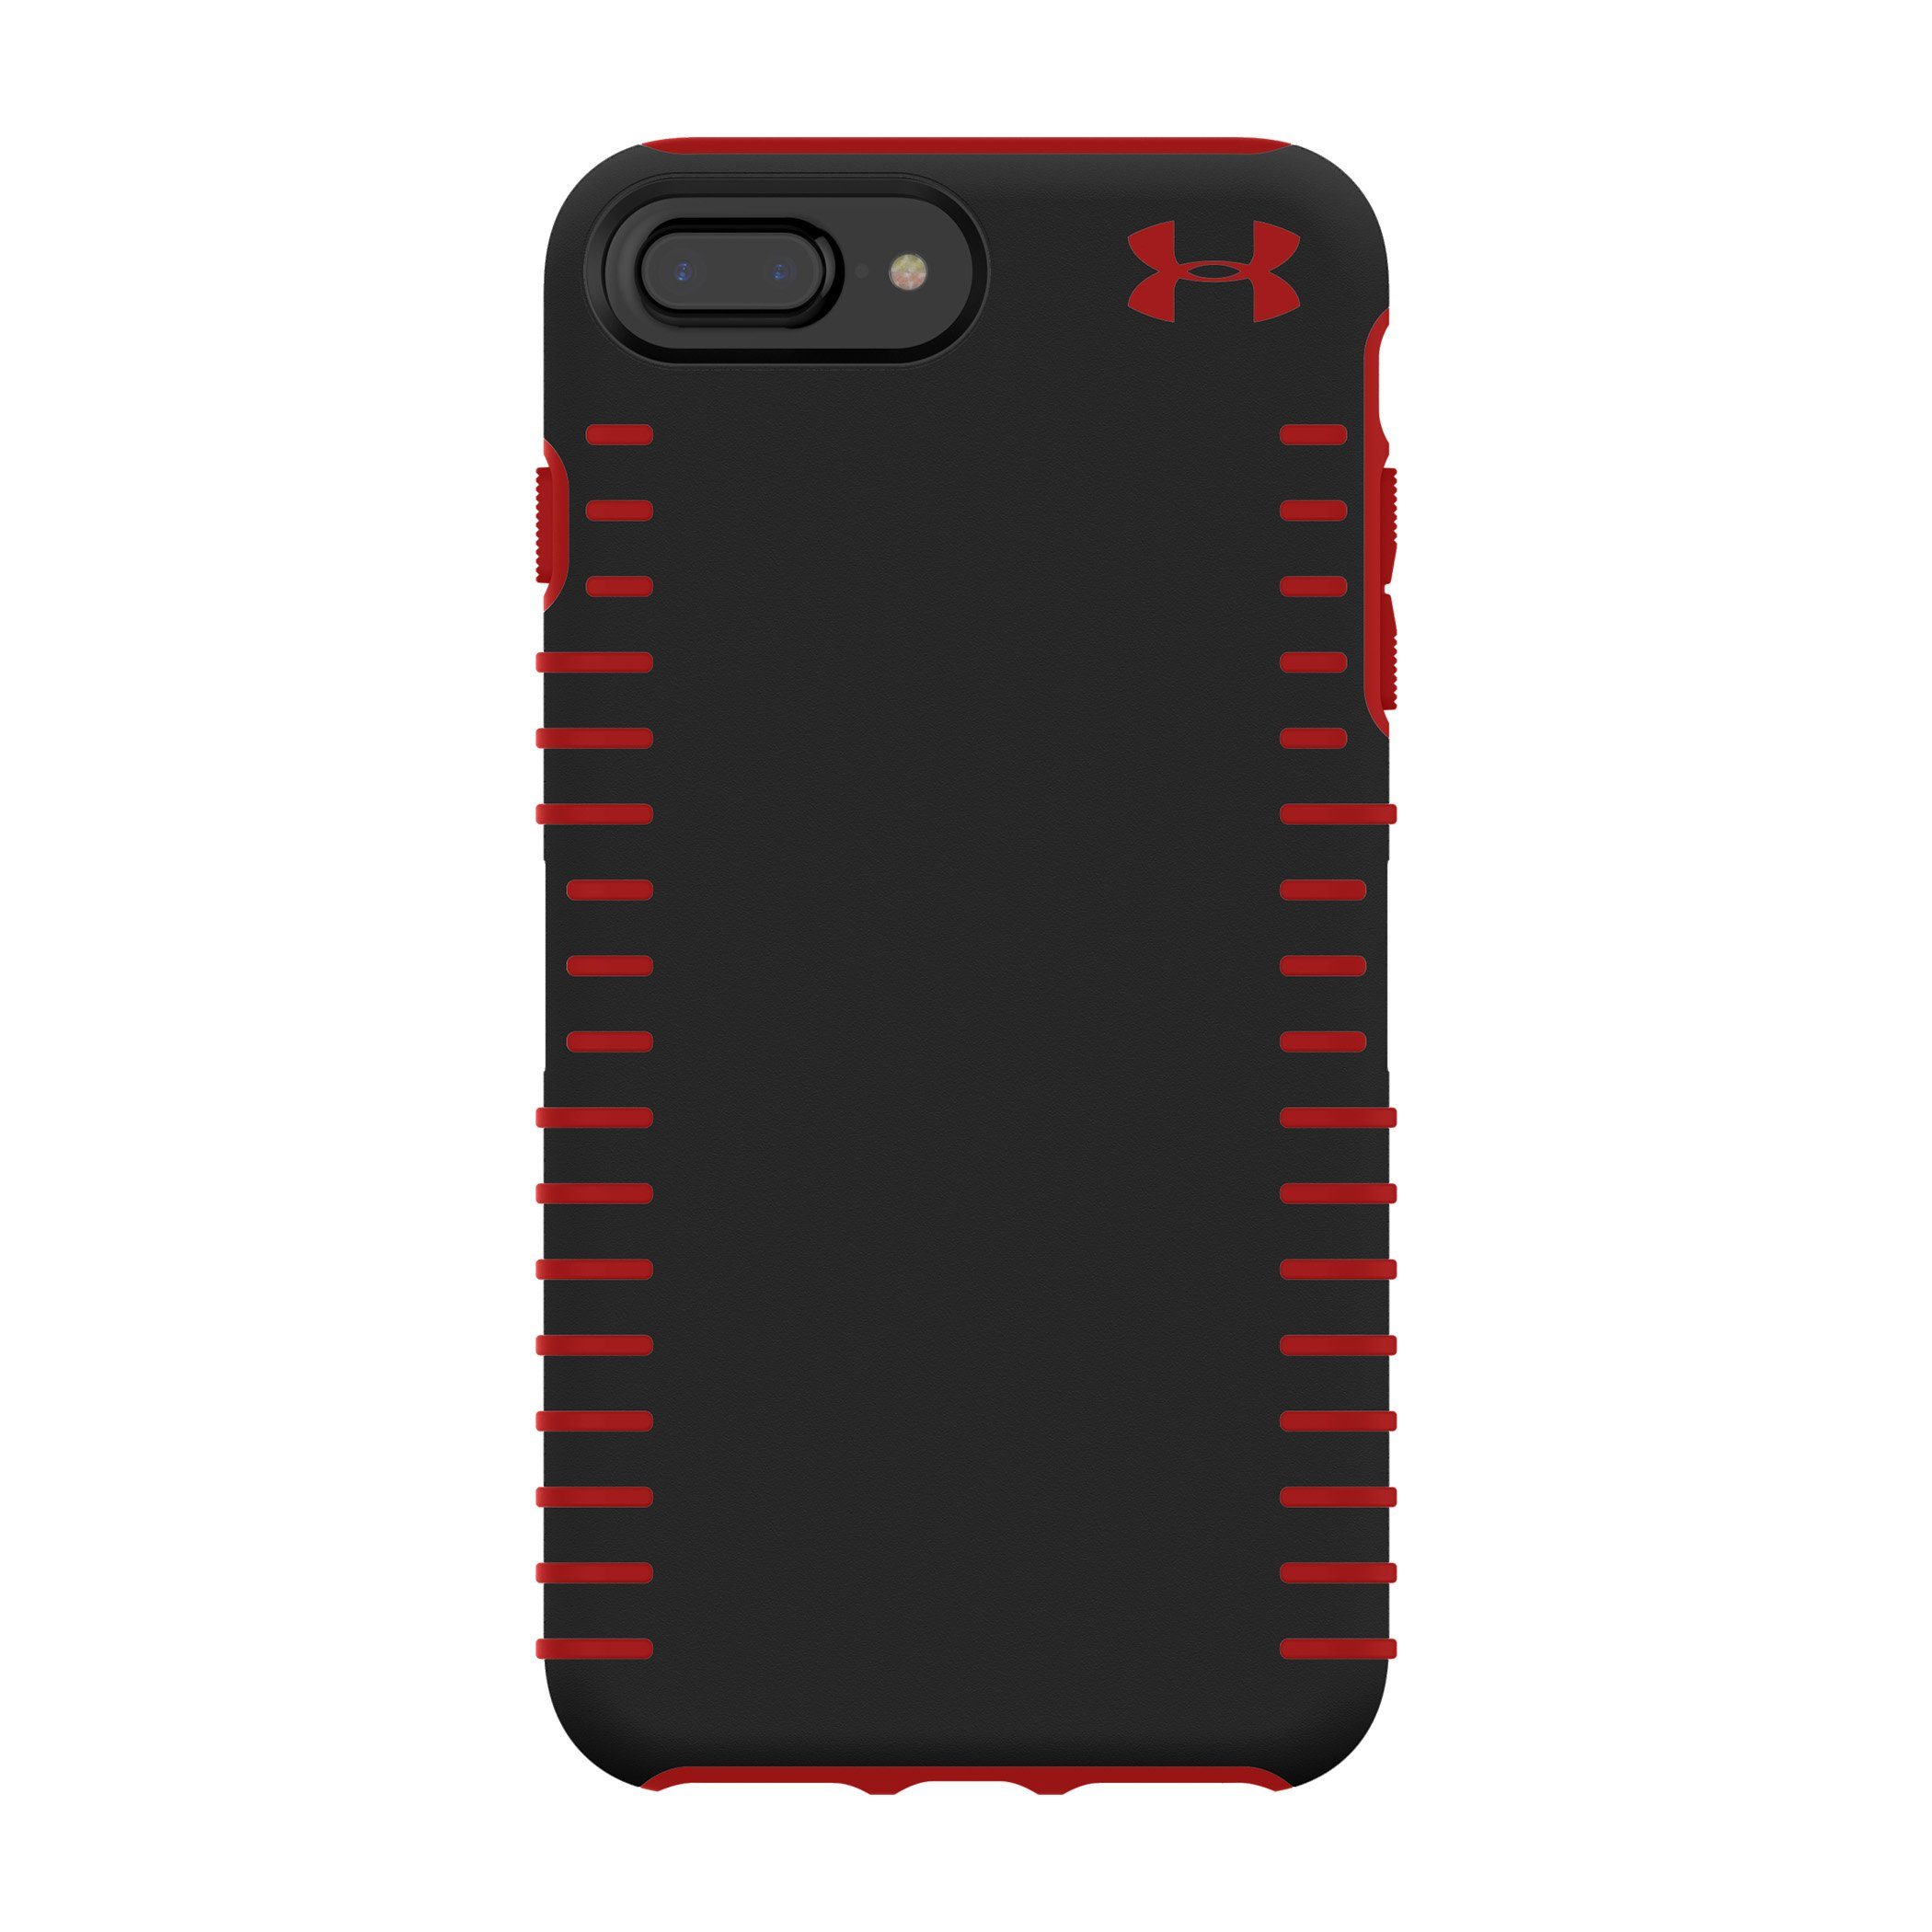 Under Armour UA Protect Grip Case for iPhone 8 Plus, iPhone 7 Plus, iPhone 6s Plus, iPhone 6 Plus - Black/Red